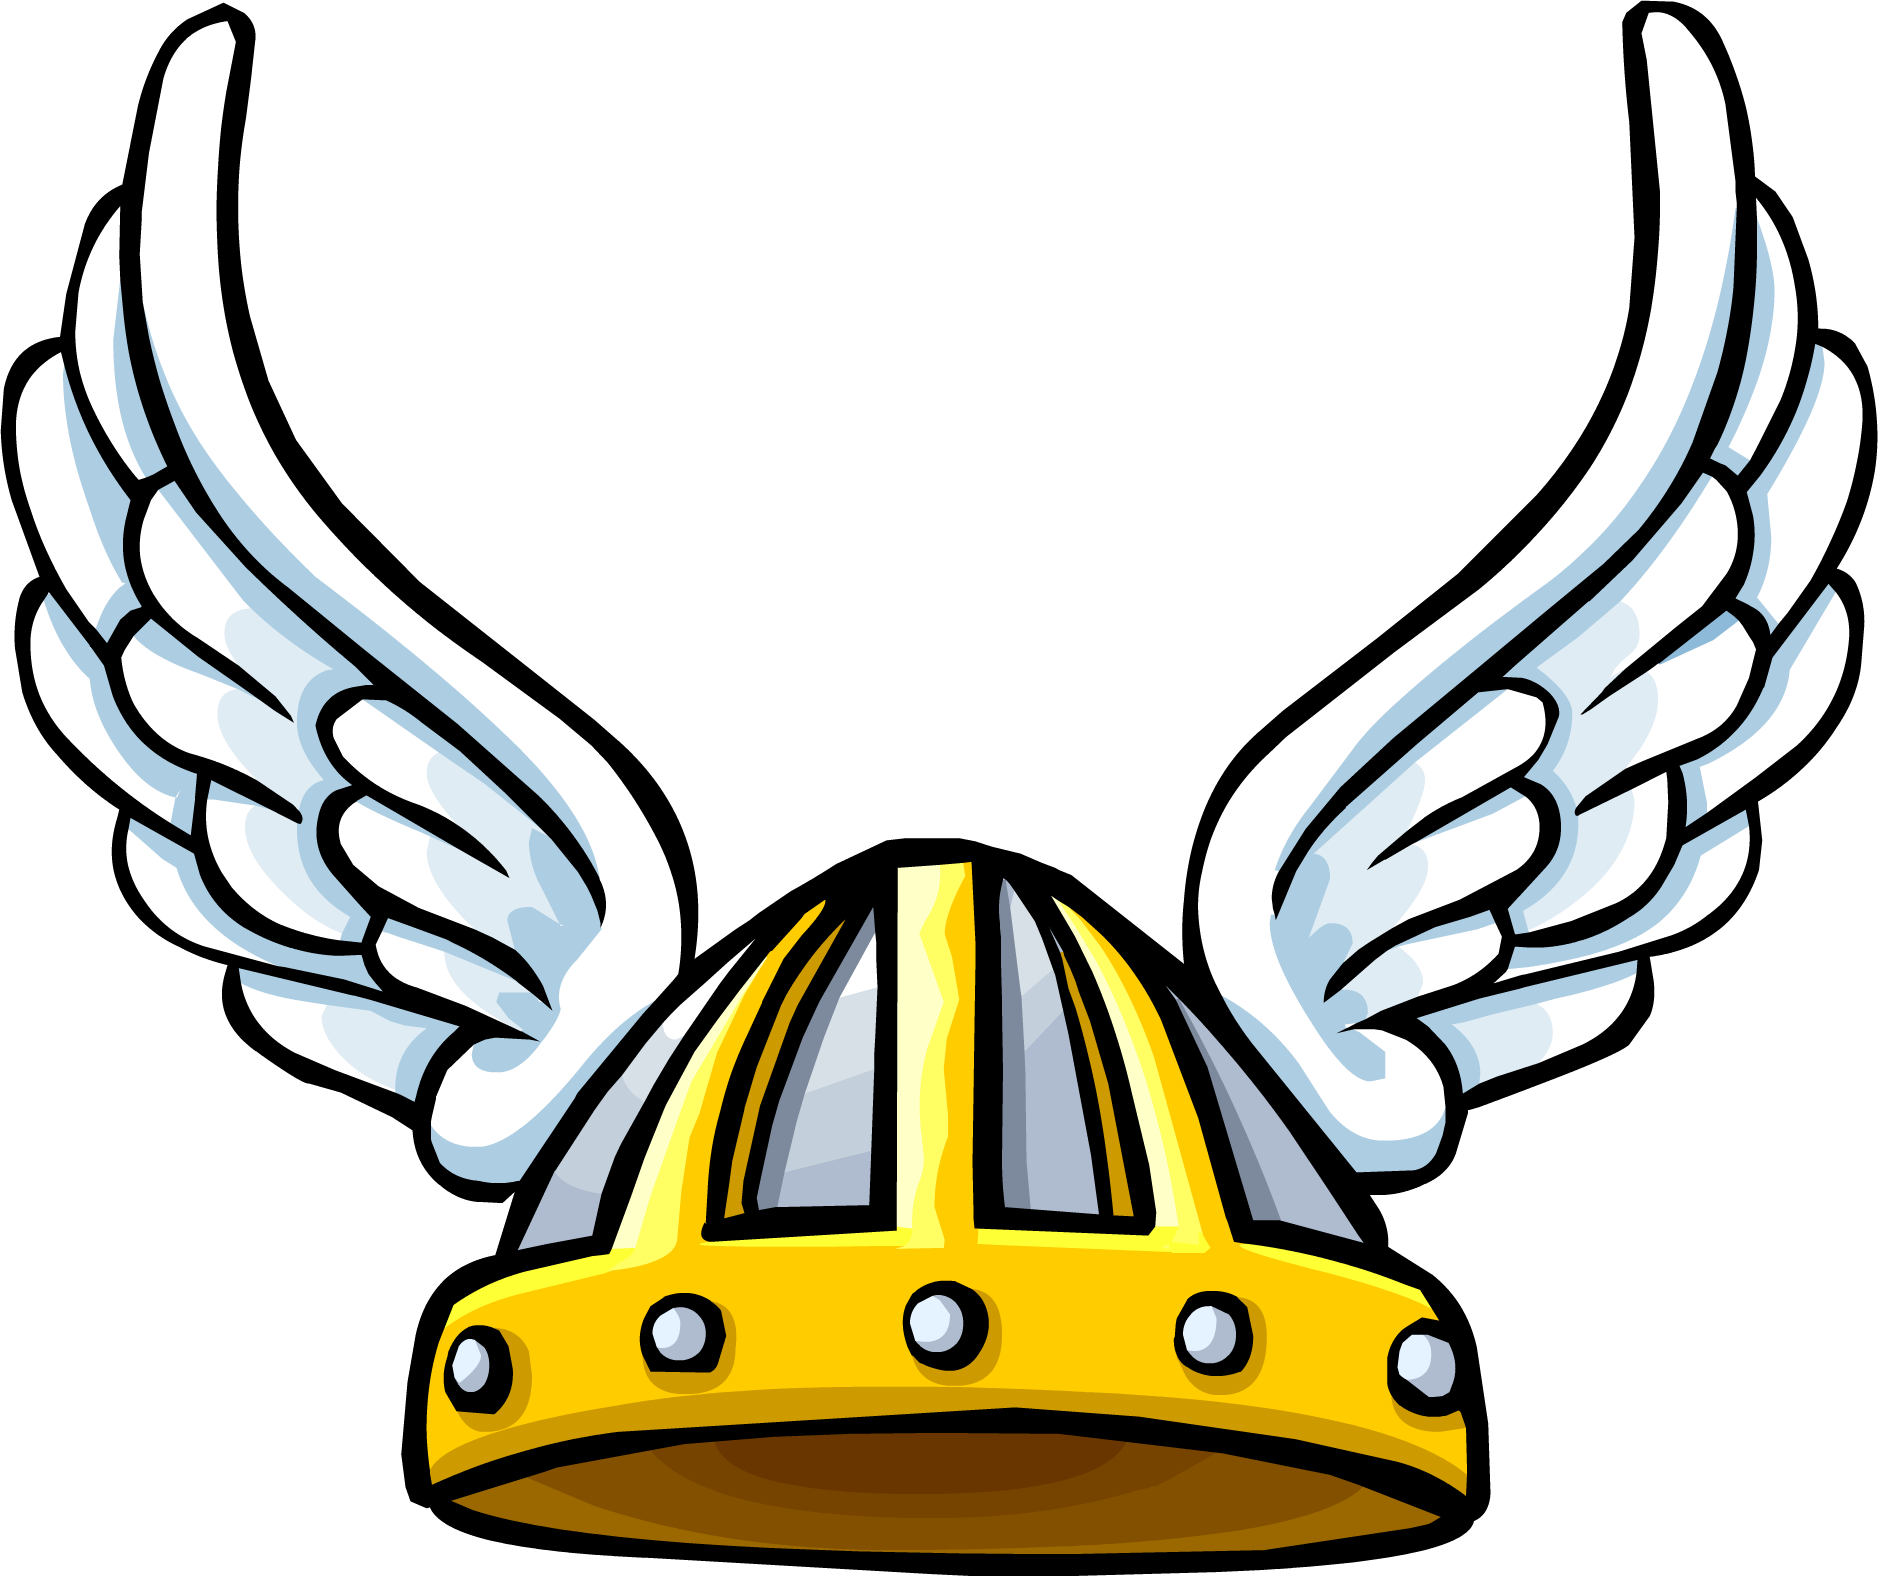 Winged Viking Helmet | Club Penguin Rewritten Wiki | Fandom